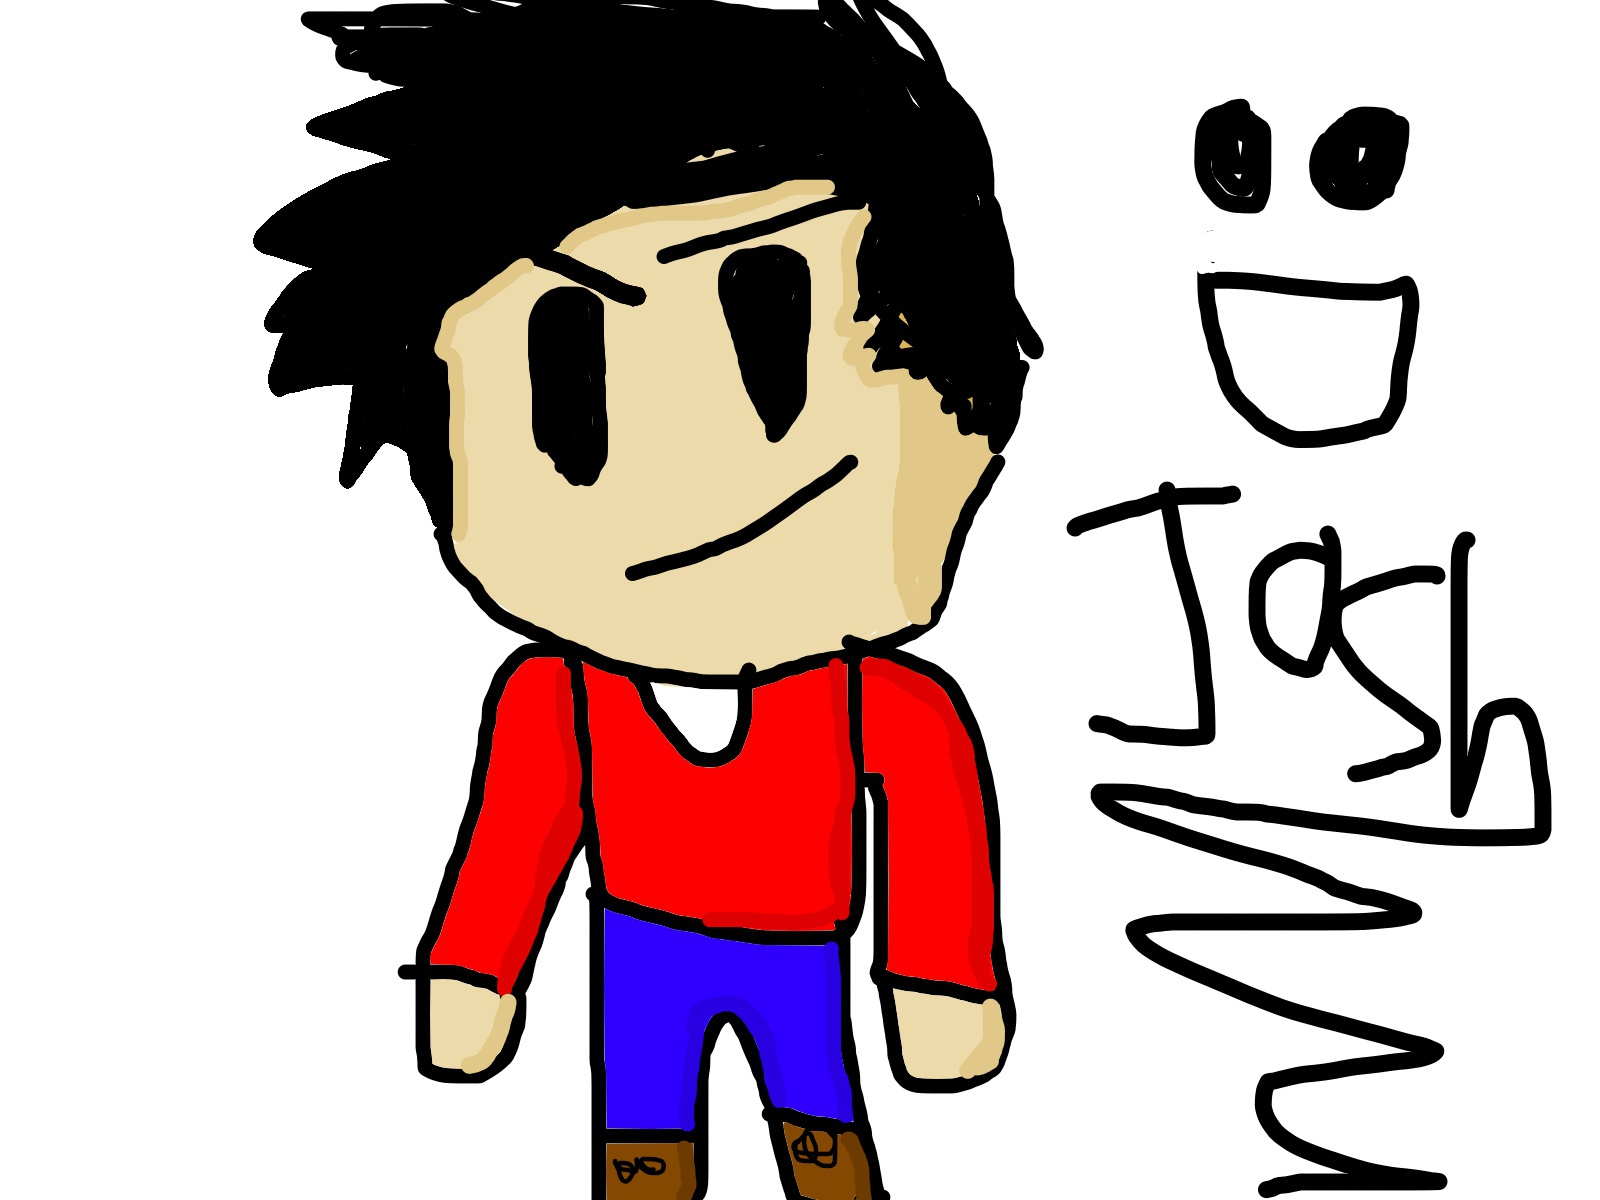 Me with shading